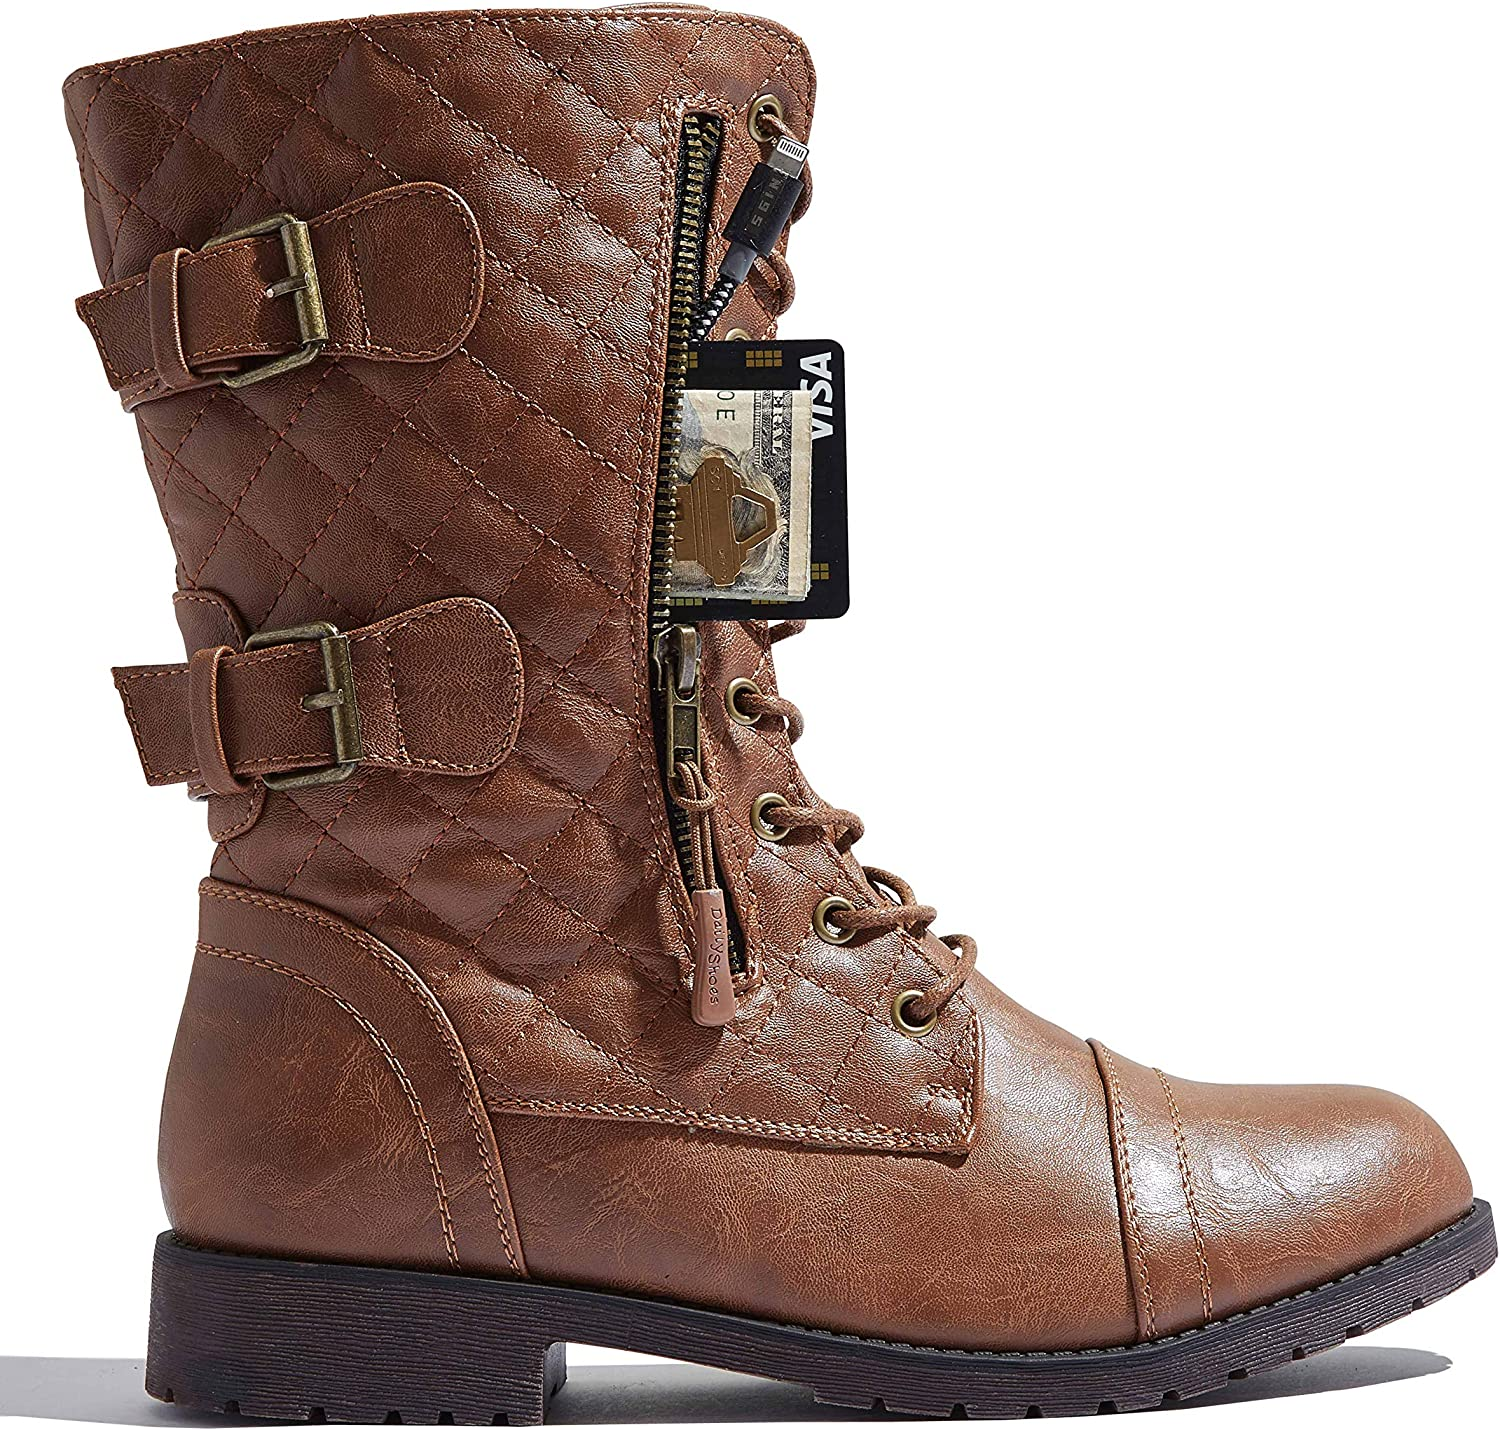 US M 7 B Quilted Tan Pu DailyShoes Womens Military Lace Up Buckle Combat Boots Mid Knee High Exclusive Quilted Credit Card Pocket